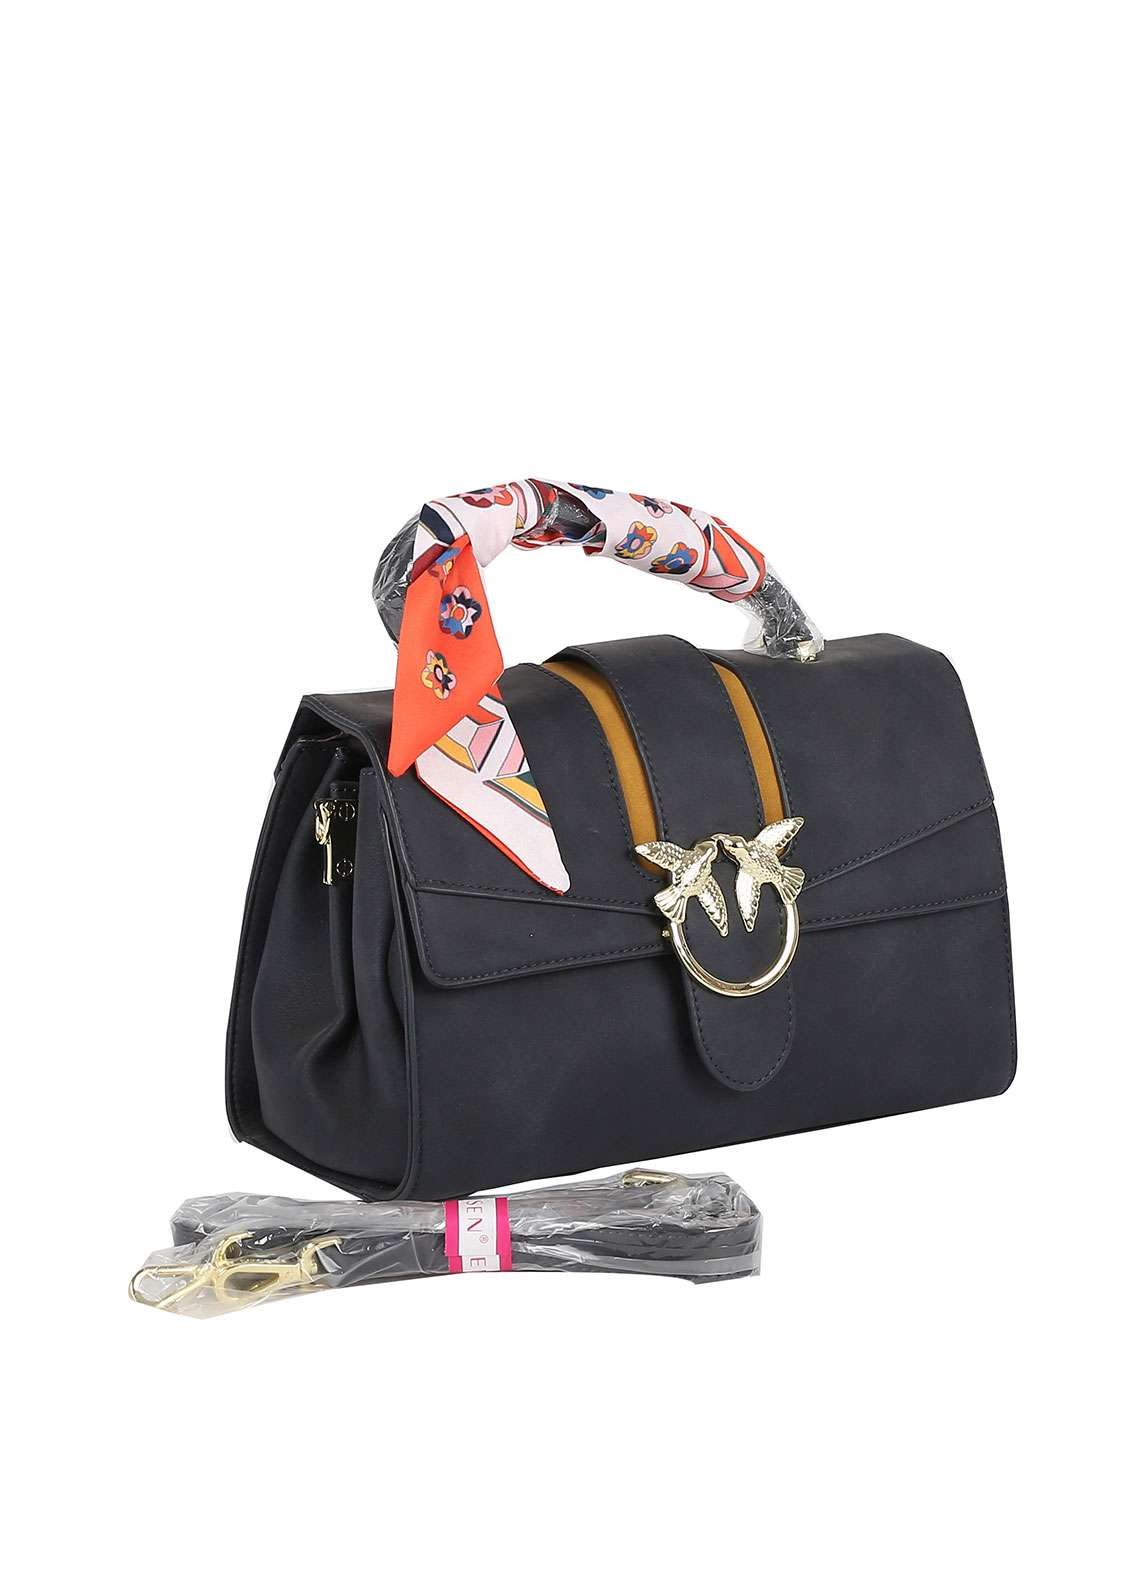 Susen PU Leather Satchels Bag for Women - Navy Blue with